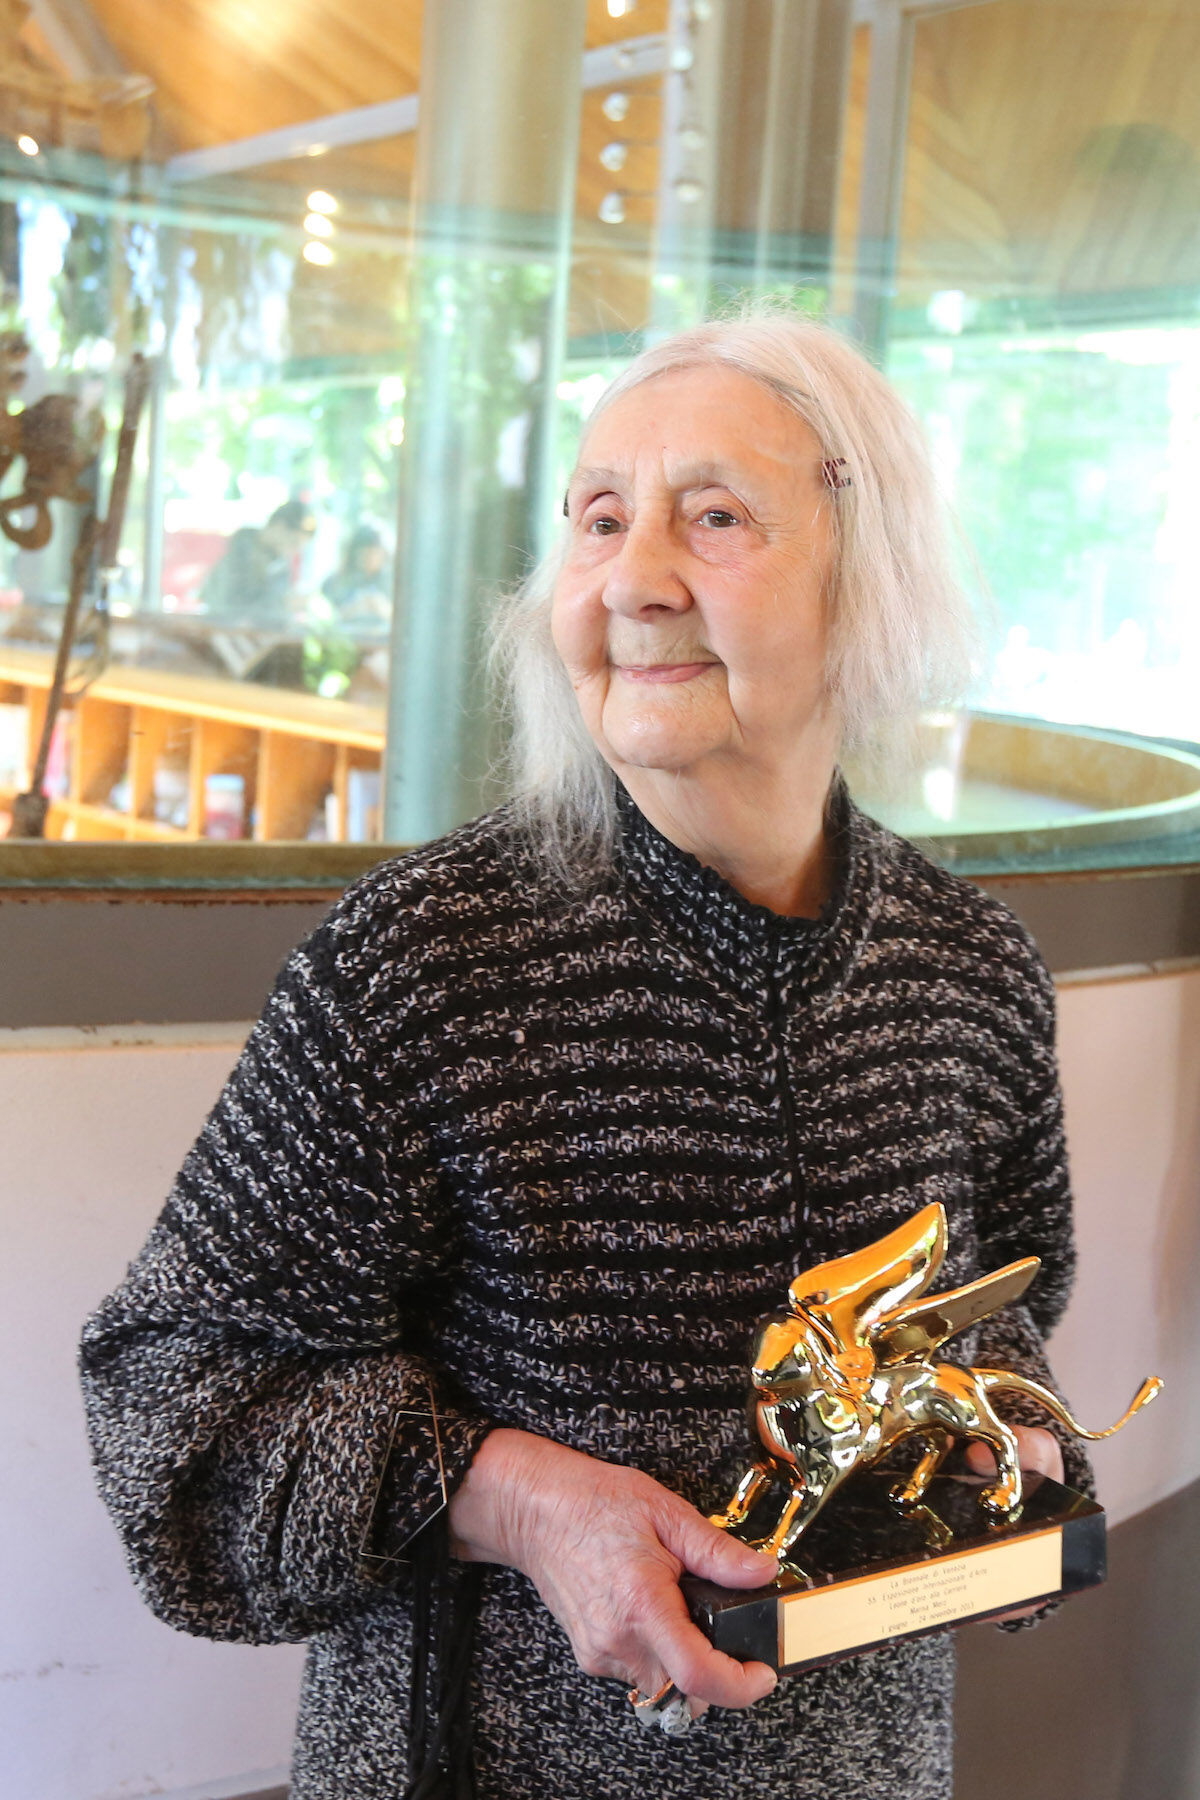 Marisa Merz with the Golden Lion for Lifetime Achievement, which she won at the 2013 Venice Biennale. Photo by Barbara Zanon/Getty Images.